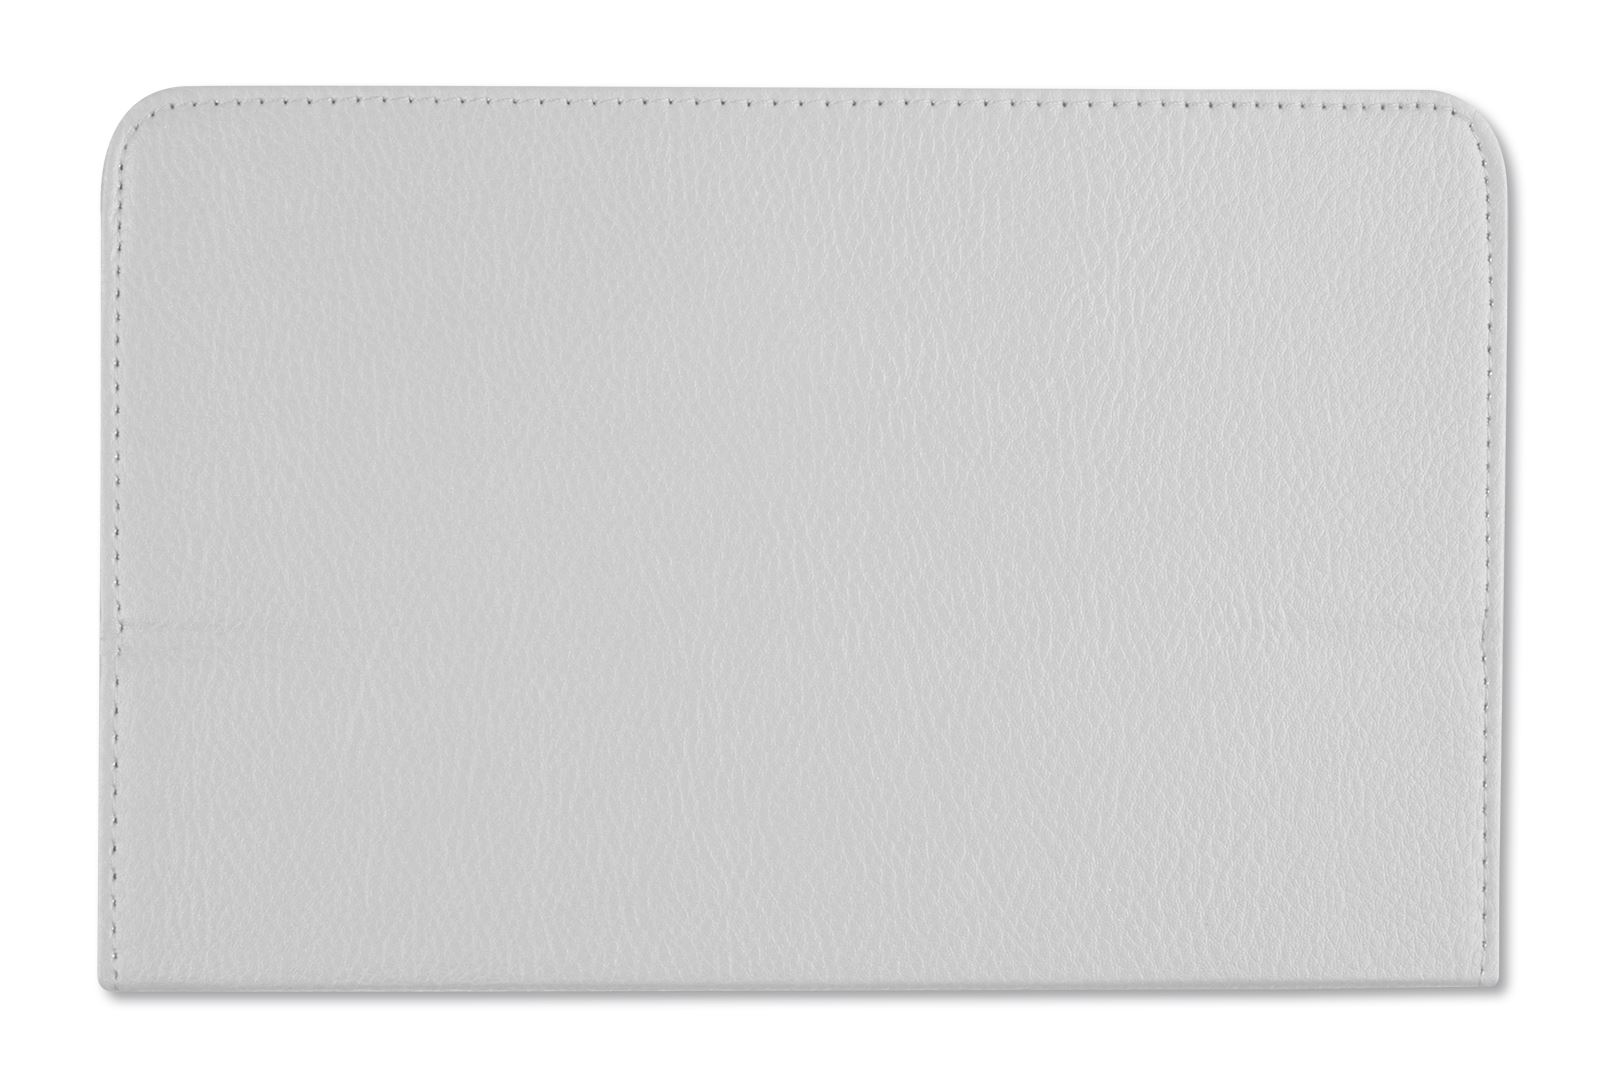 Hellfire-Trading-Magnetic-PU-Leather-Case-Cover-for-Lenovo-IdeaTab-A8-50-A5500 Indexbild 31